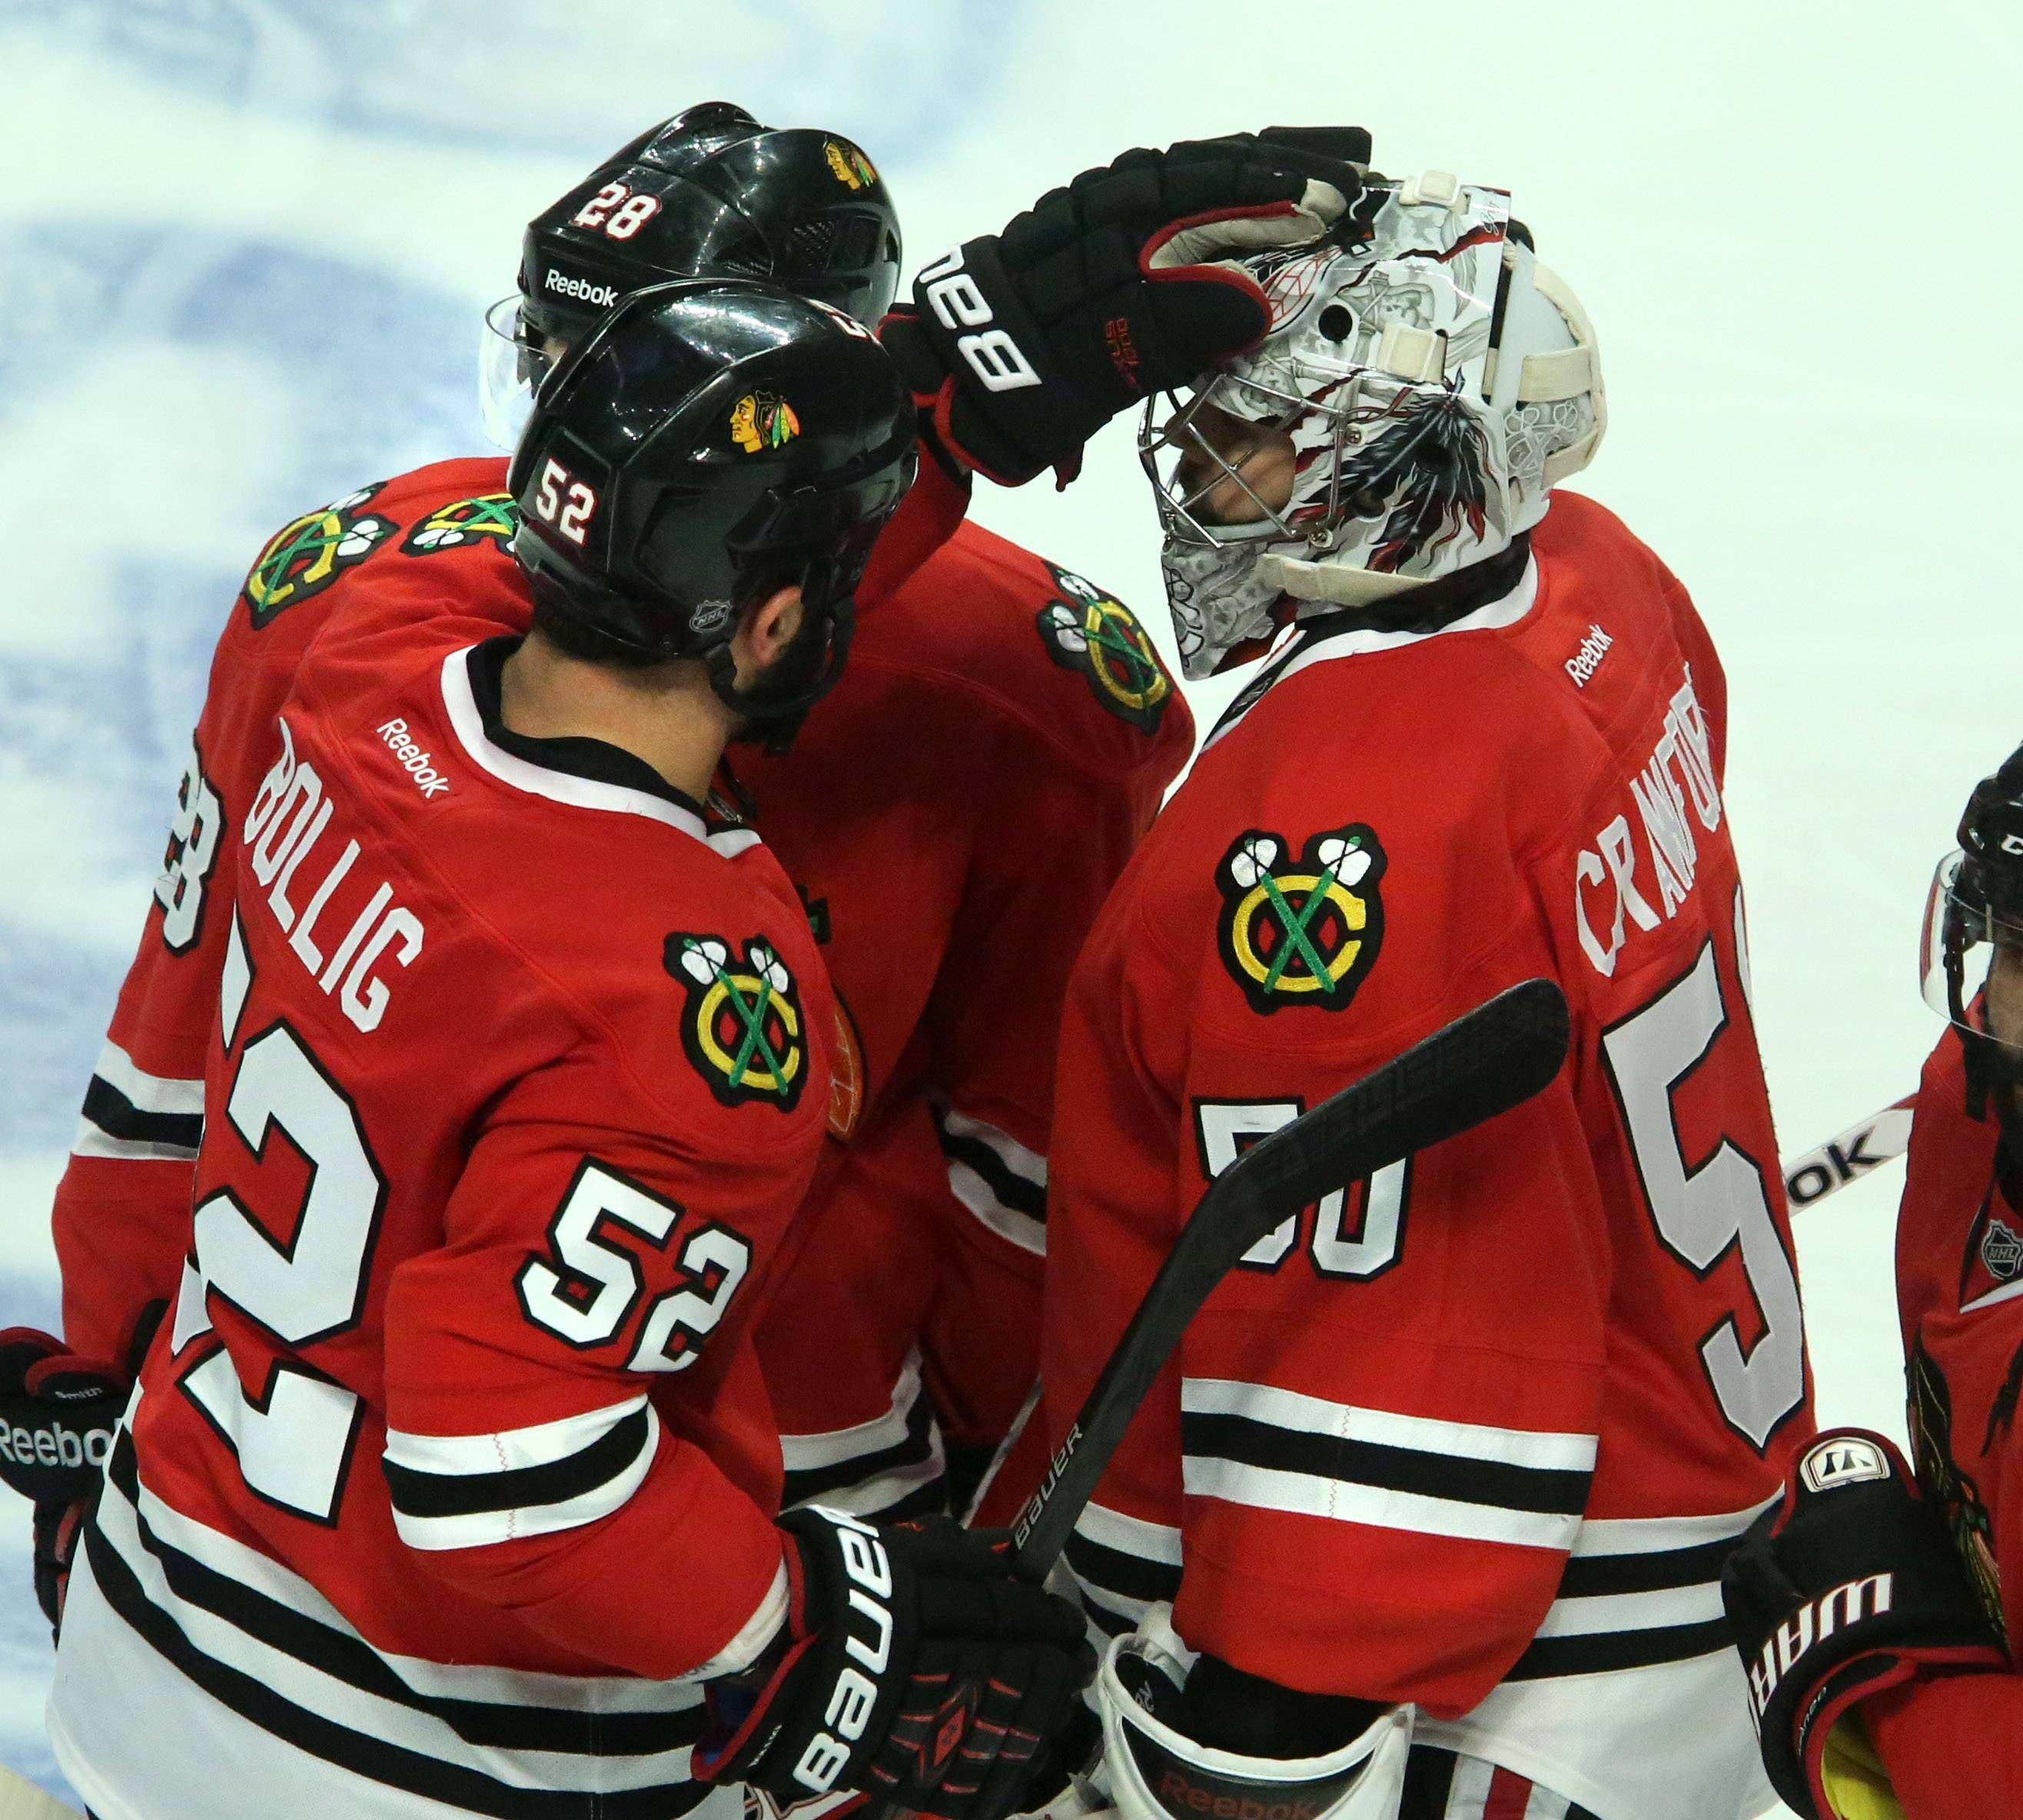 Chicago Blackhawks goalie Corey Crawford gets a hand from Brandon Bollig after letting the winning goal past him in overtime of Game 7 as the Los Angeles Kings win the Western Conference final 5-4 on Sunday at the United Center in Chicago.